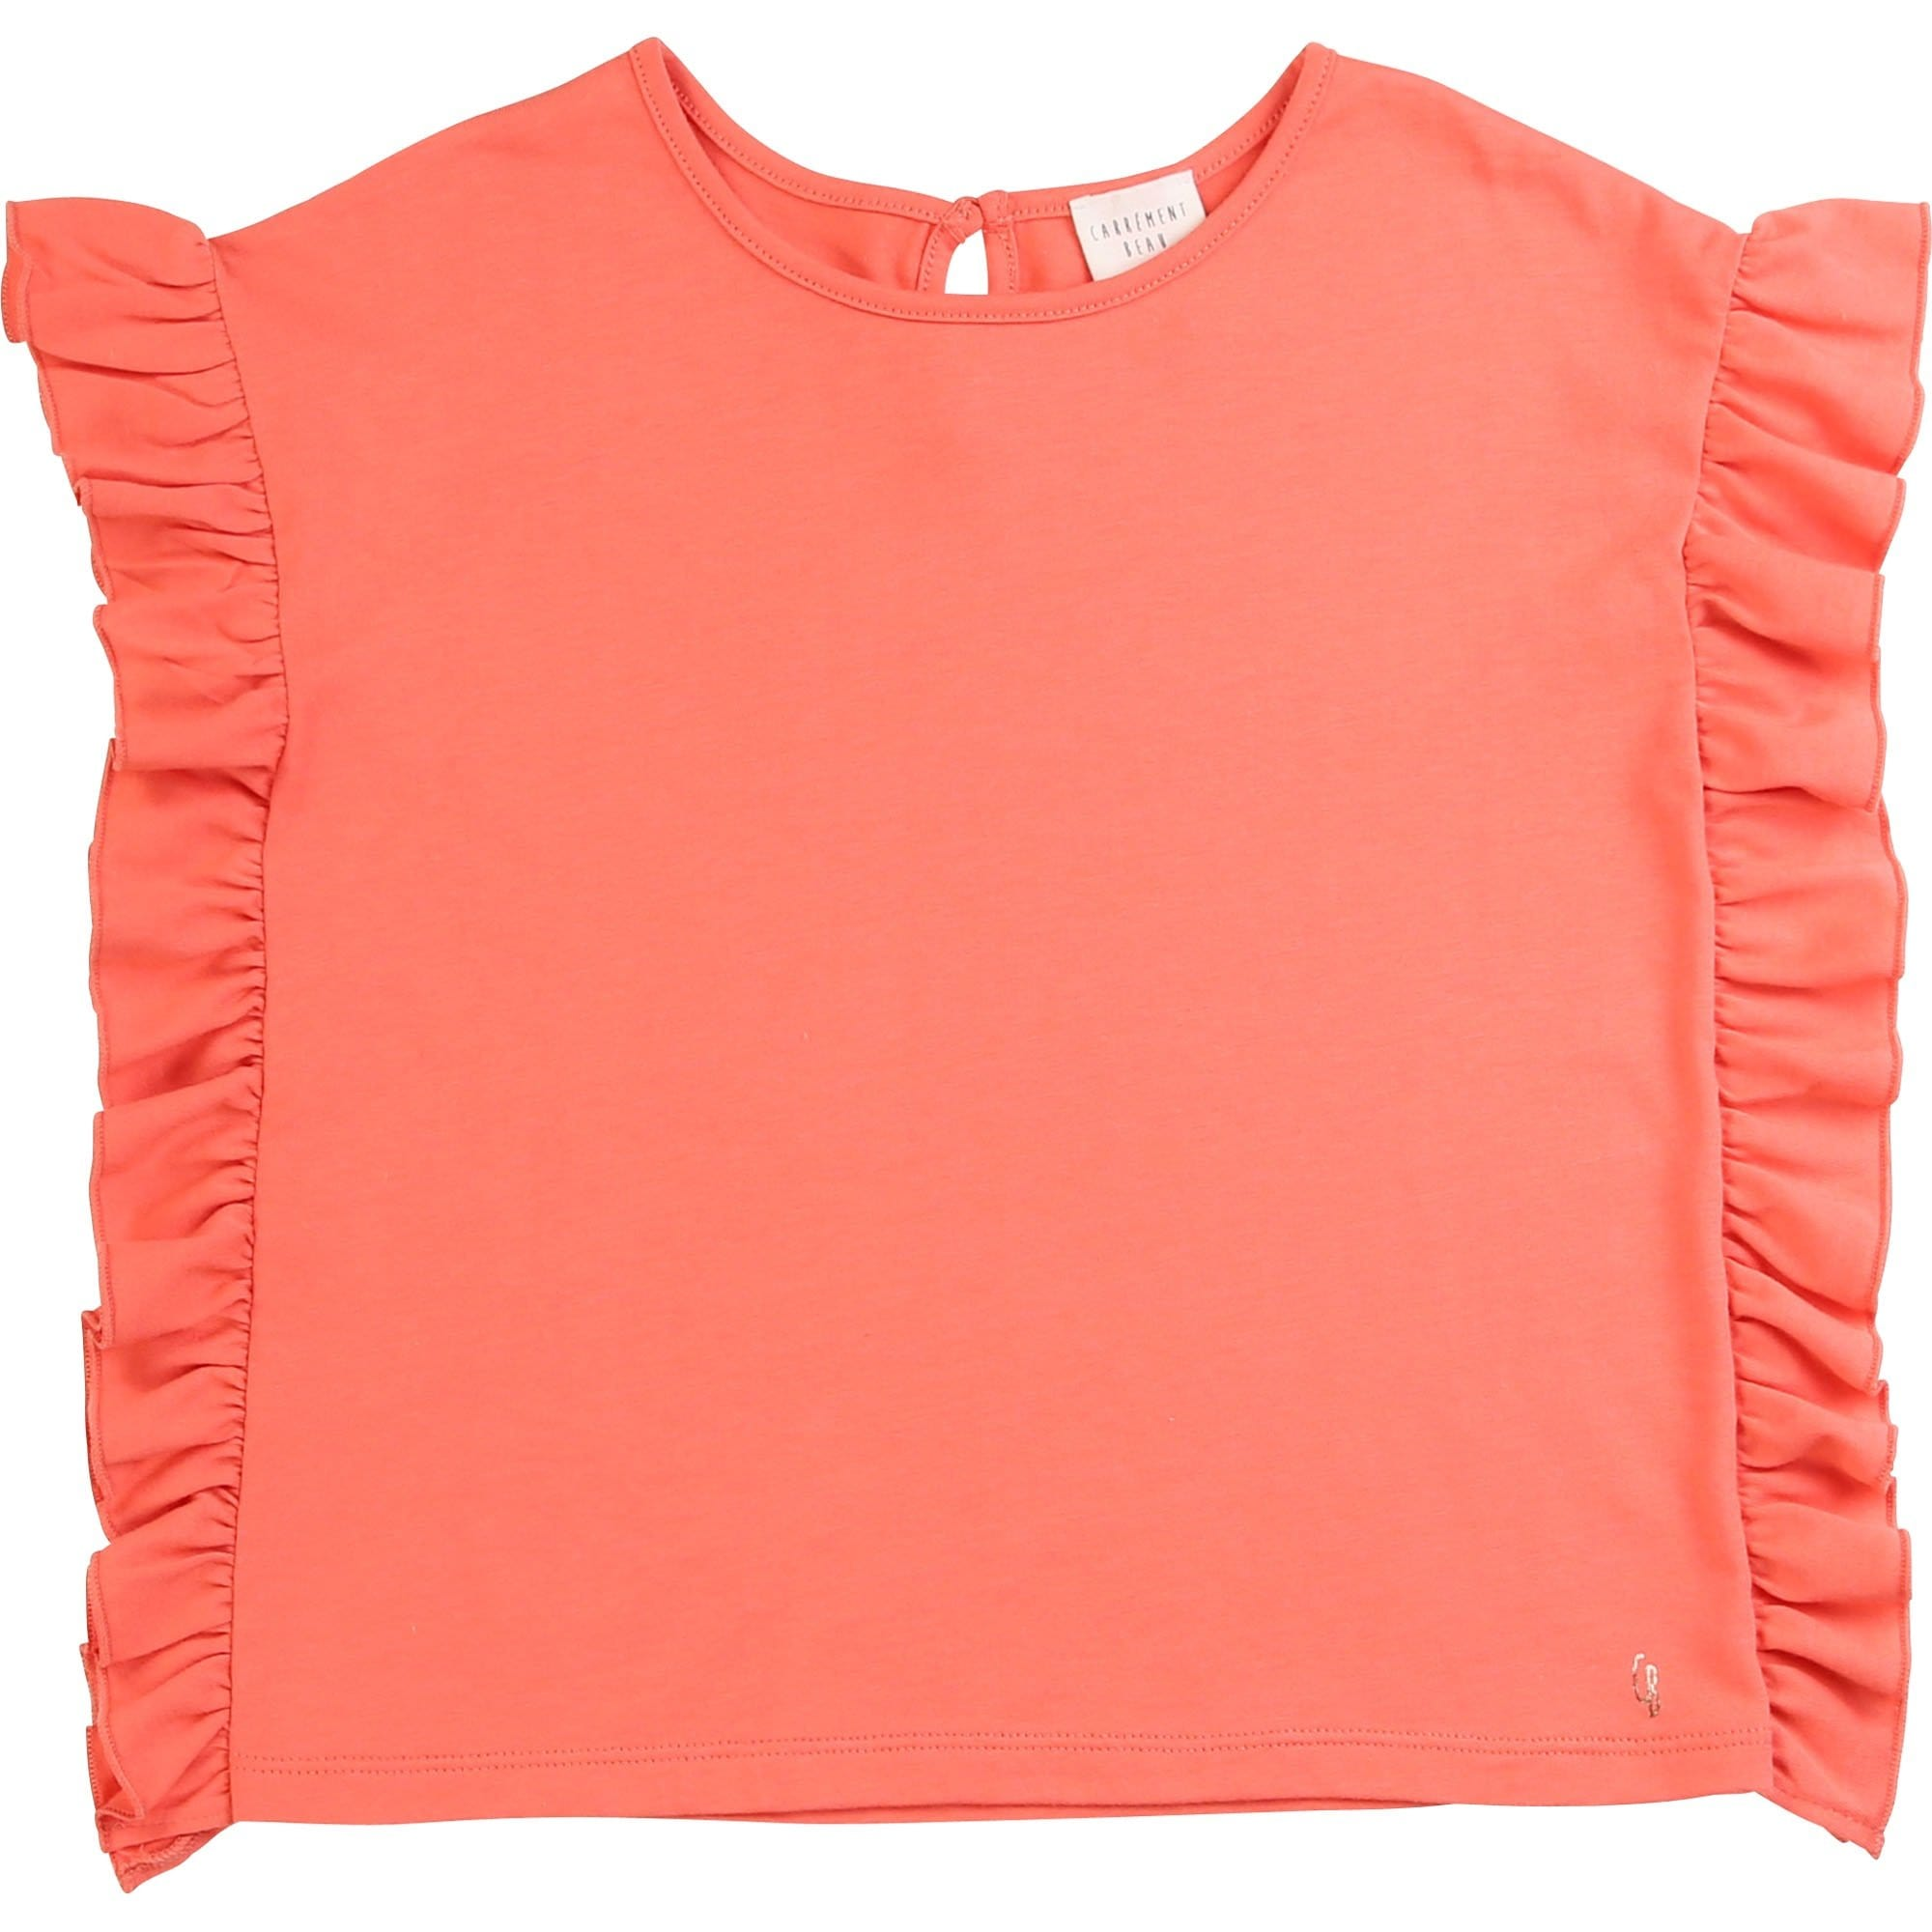 Carrement Beau Frill Short Sleeve T-Shirt Apricot